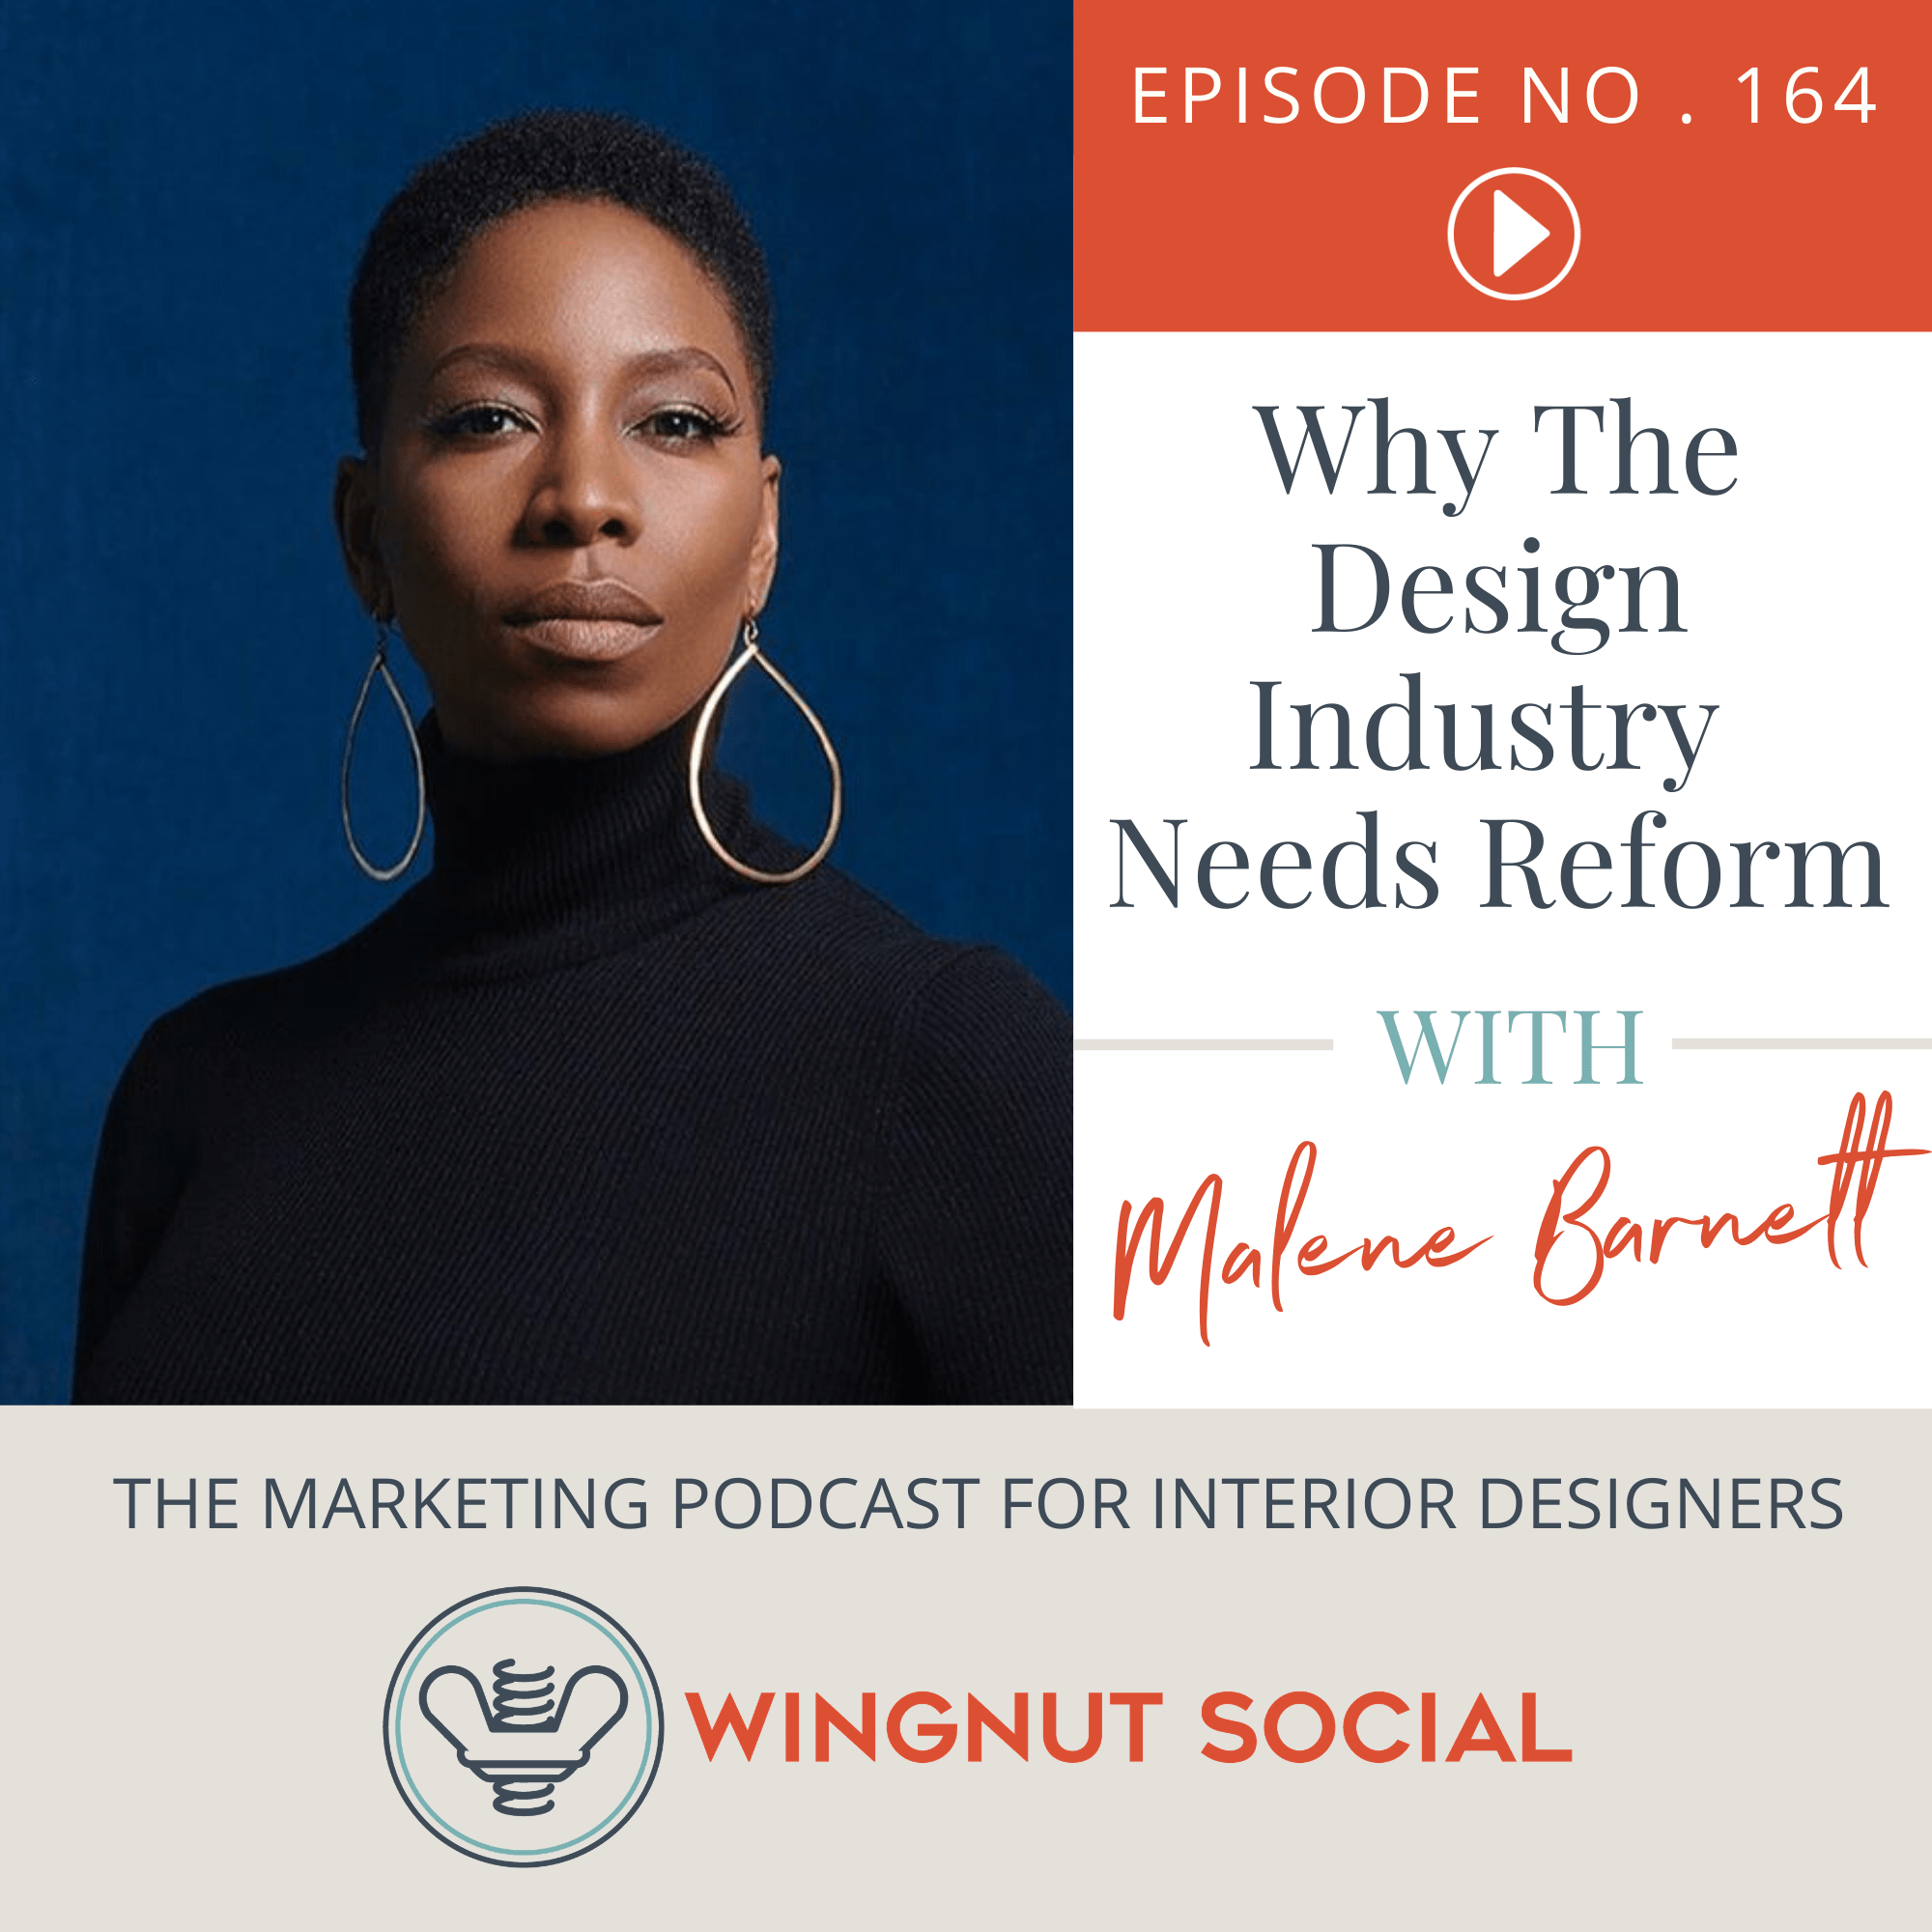 Why The Design Industry Needs Reform with Malene Barnett - Episode 164